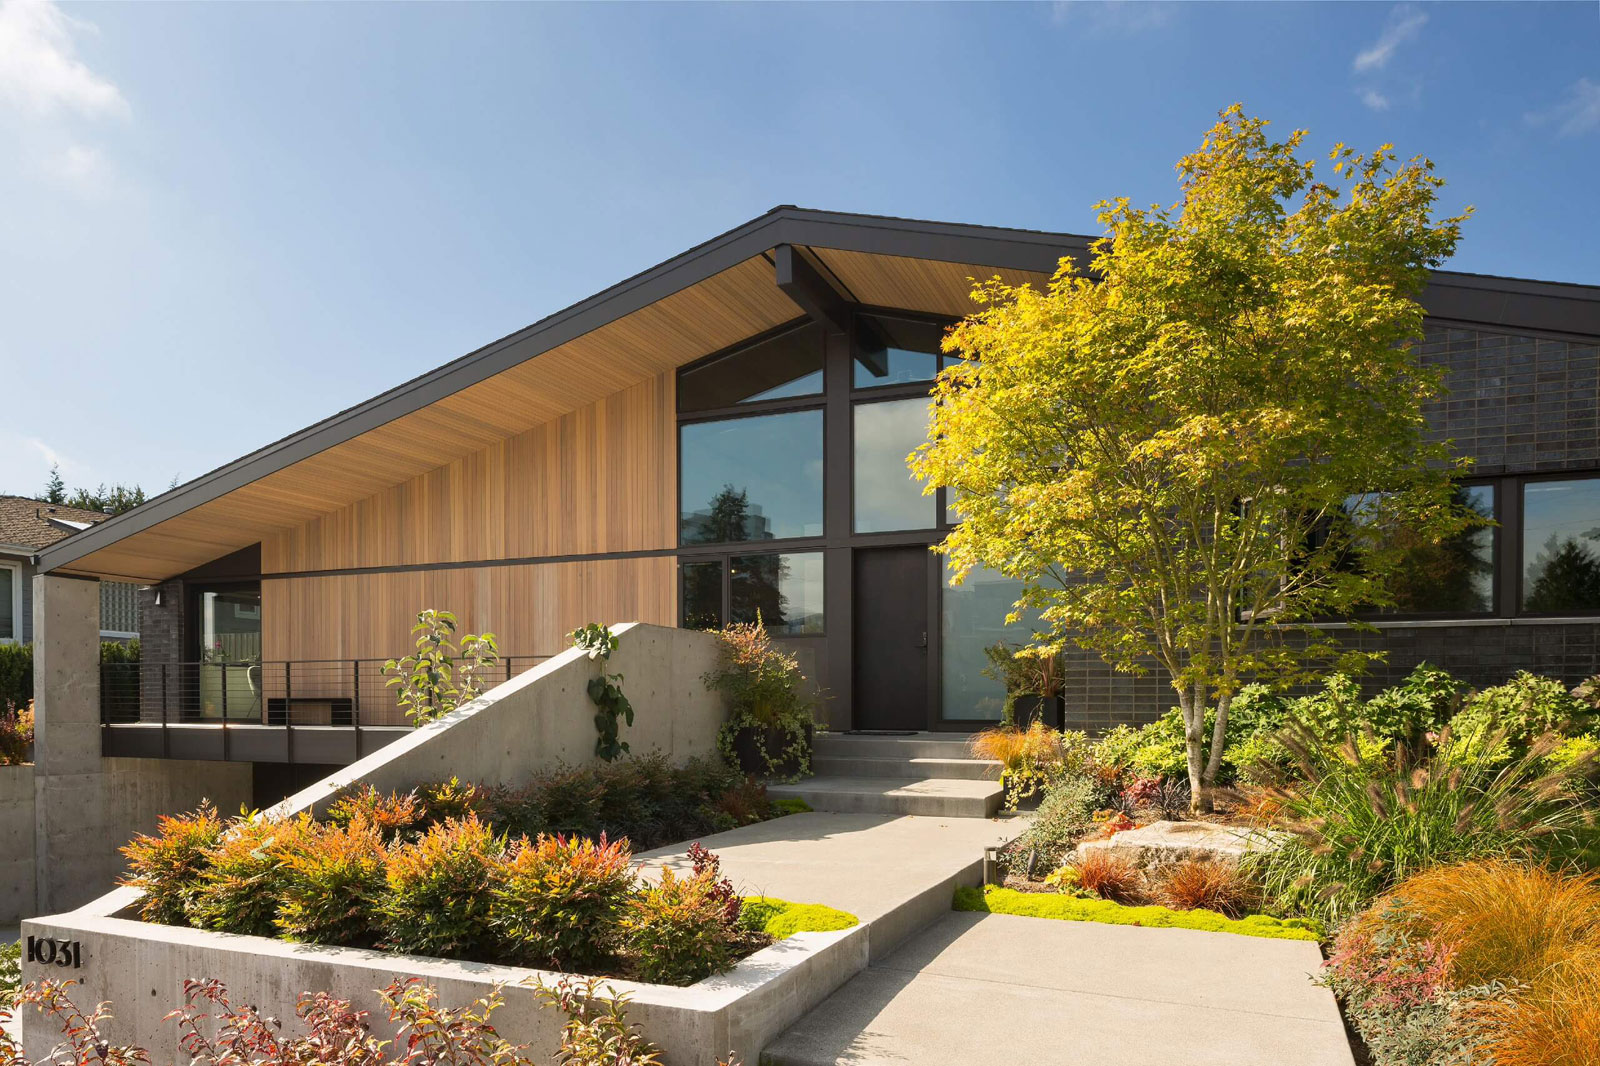 Lane Williams Architects Design A Private Residence In Vuecrest A Neighborhood Of Bellevue